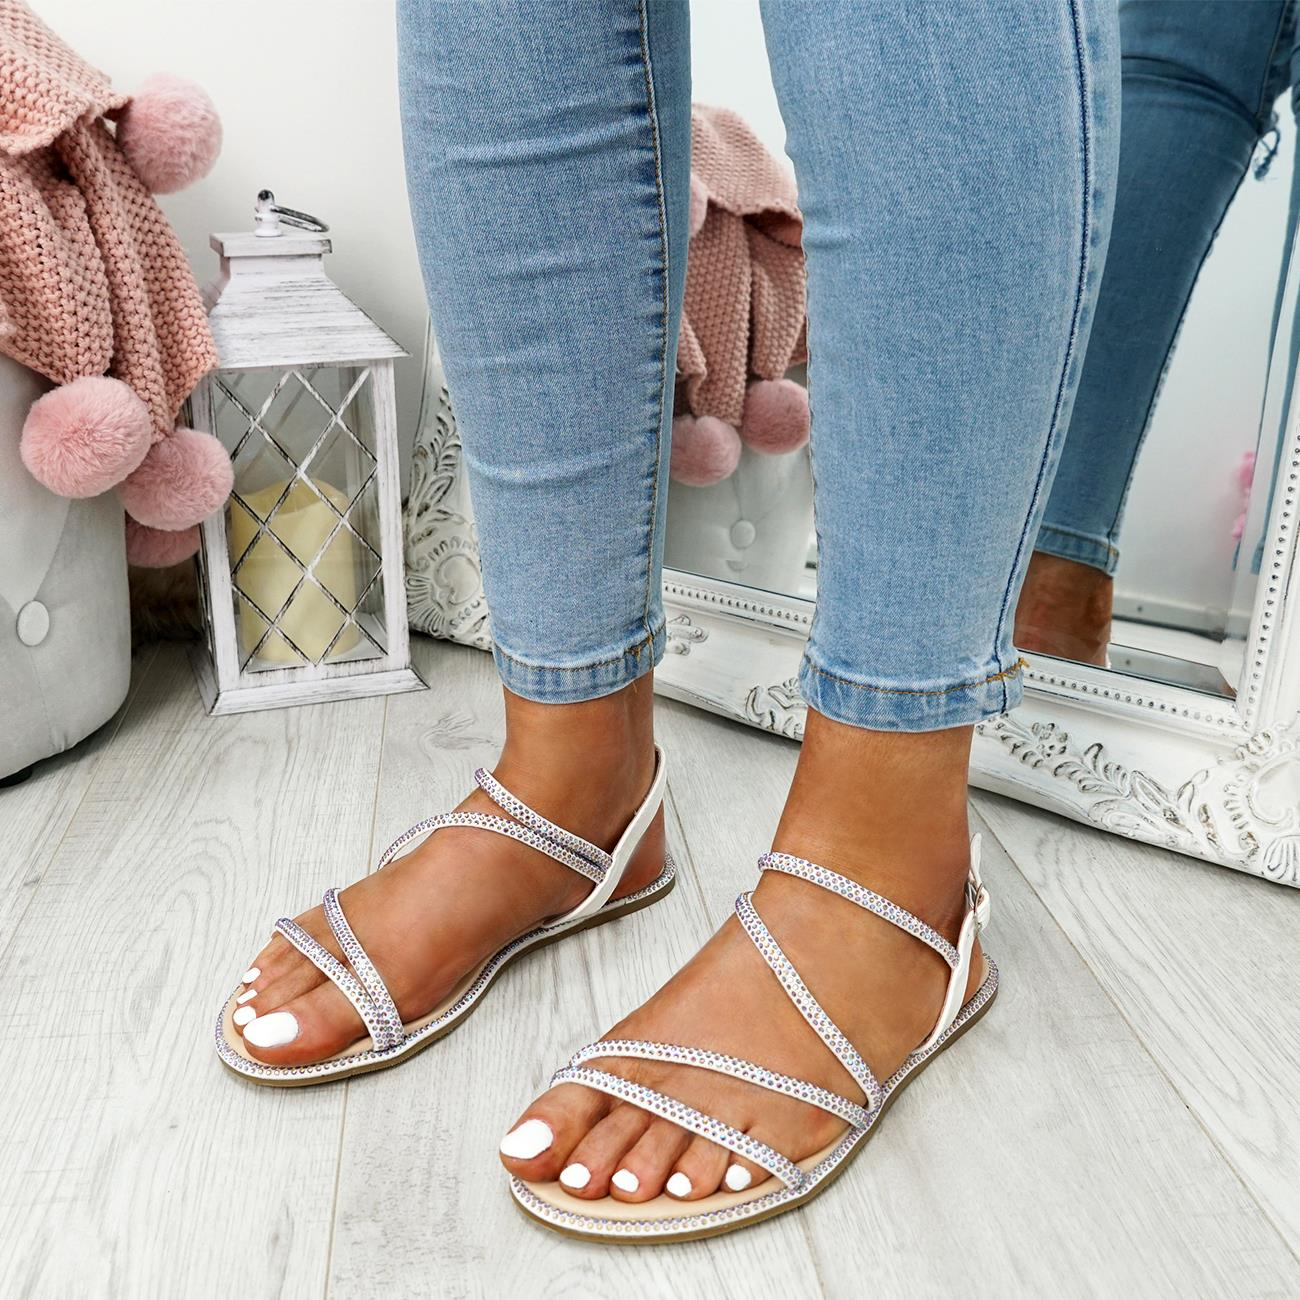 WOMENS-LADIES-STUDDED-ANKLE-STRAP-FLAT-SHOES-PARTY-CLUB-SANDALS-SHOES-SIZE-UK thumbnail 19